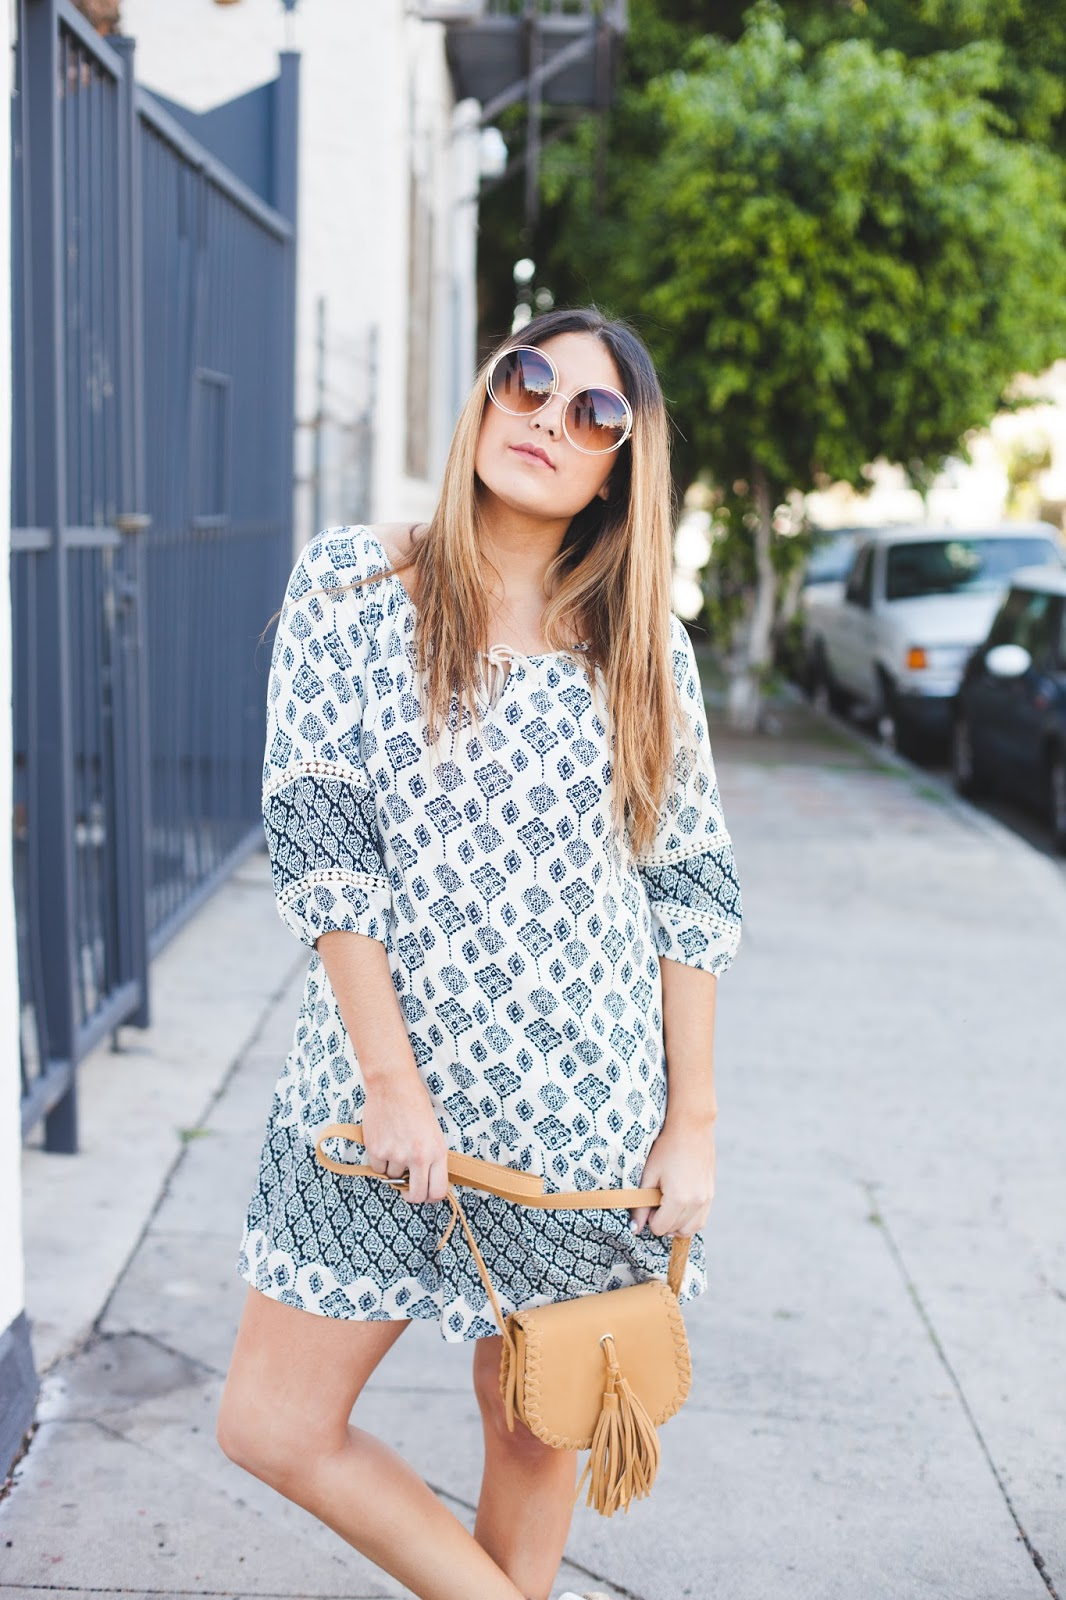 Fashion Blogger - My Cup of Chic